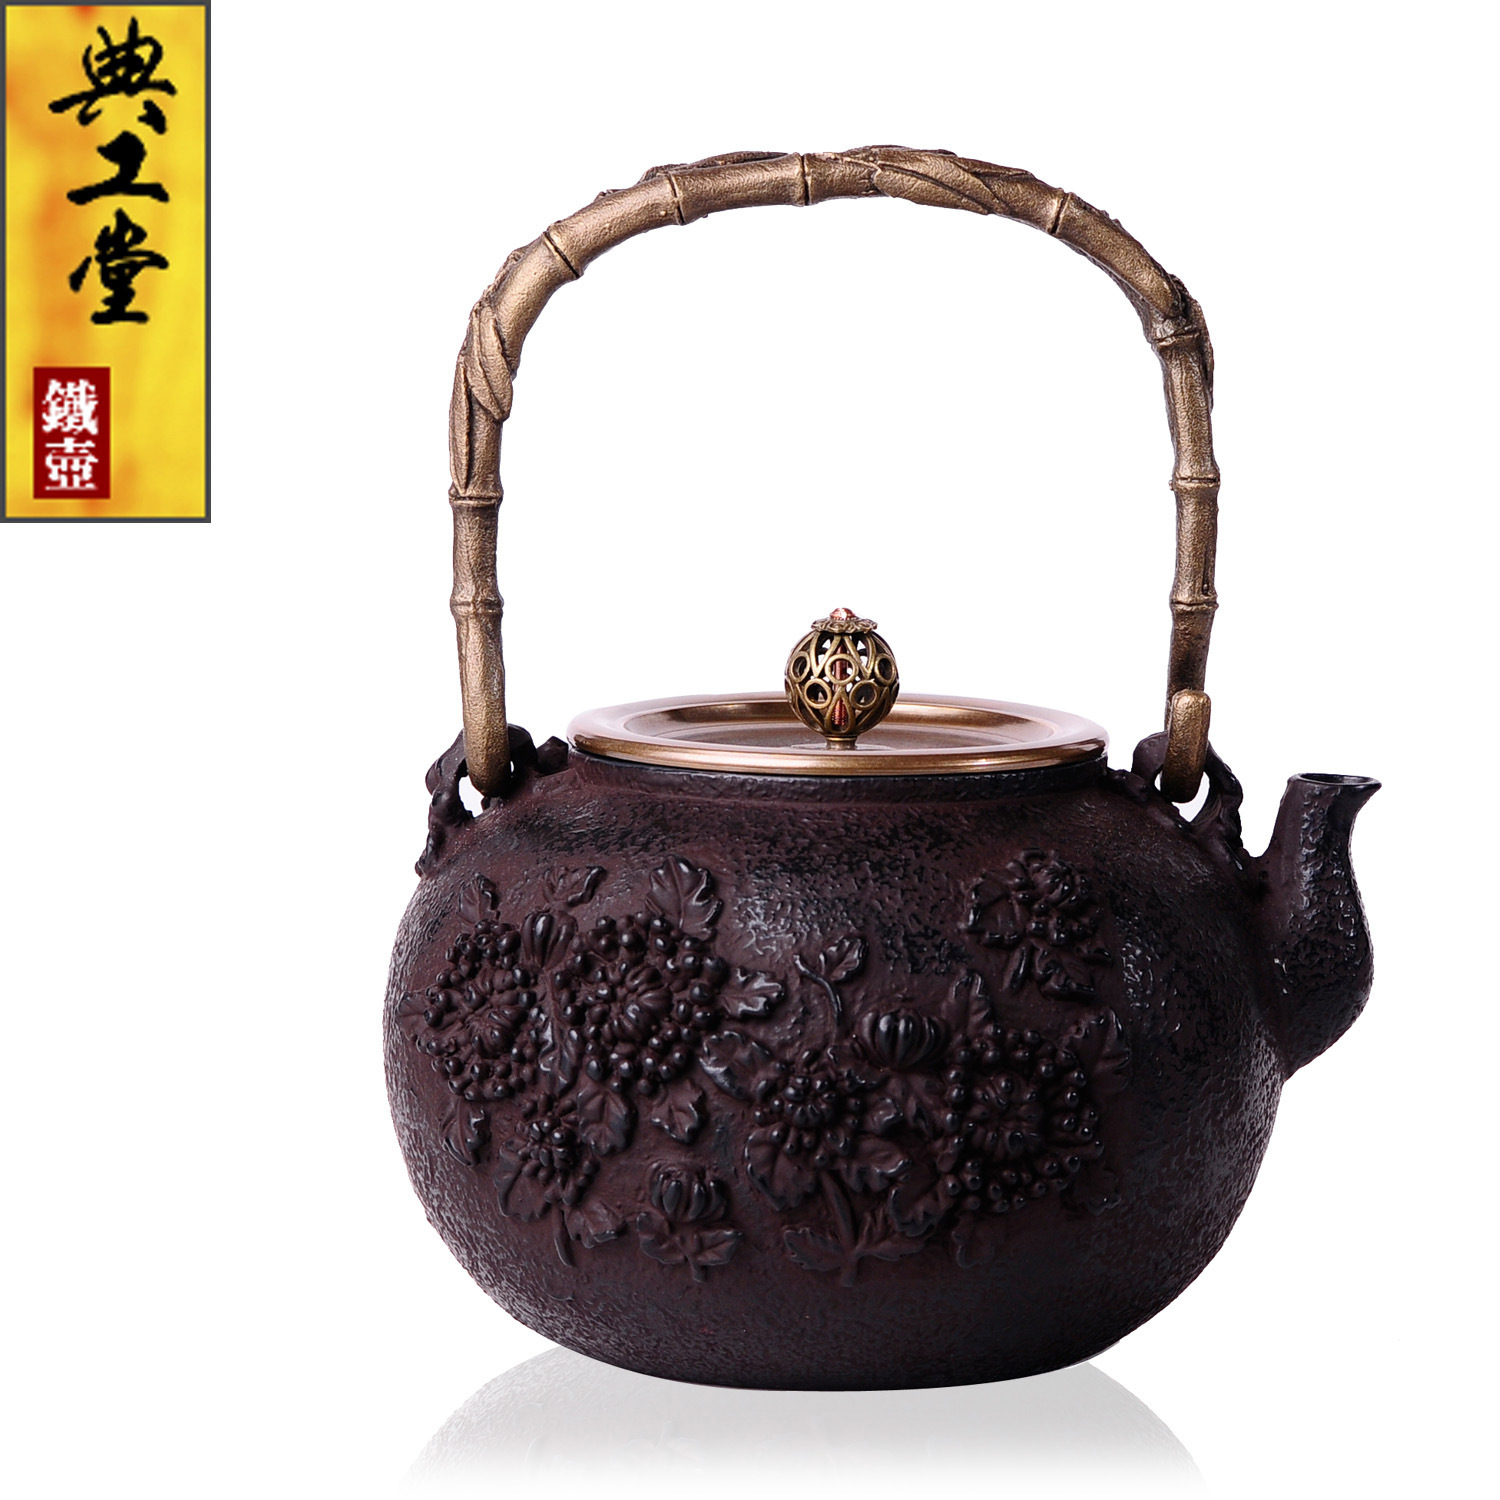 High Quality Japanese Style Cast Iron Teapot Infuser Pot Tea Set Tetsubin Kettle Metal Strainer